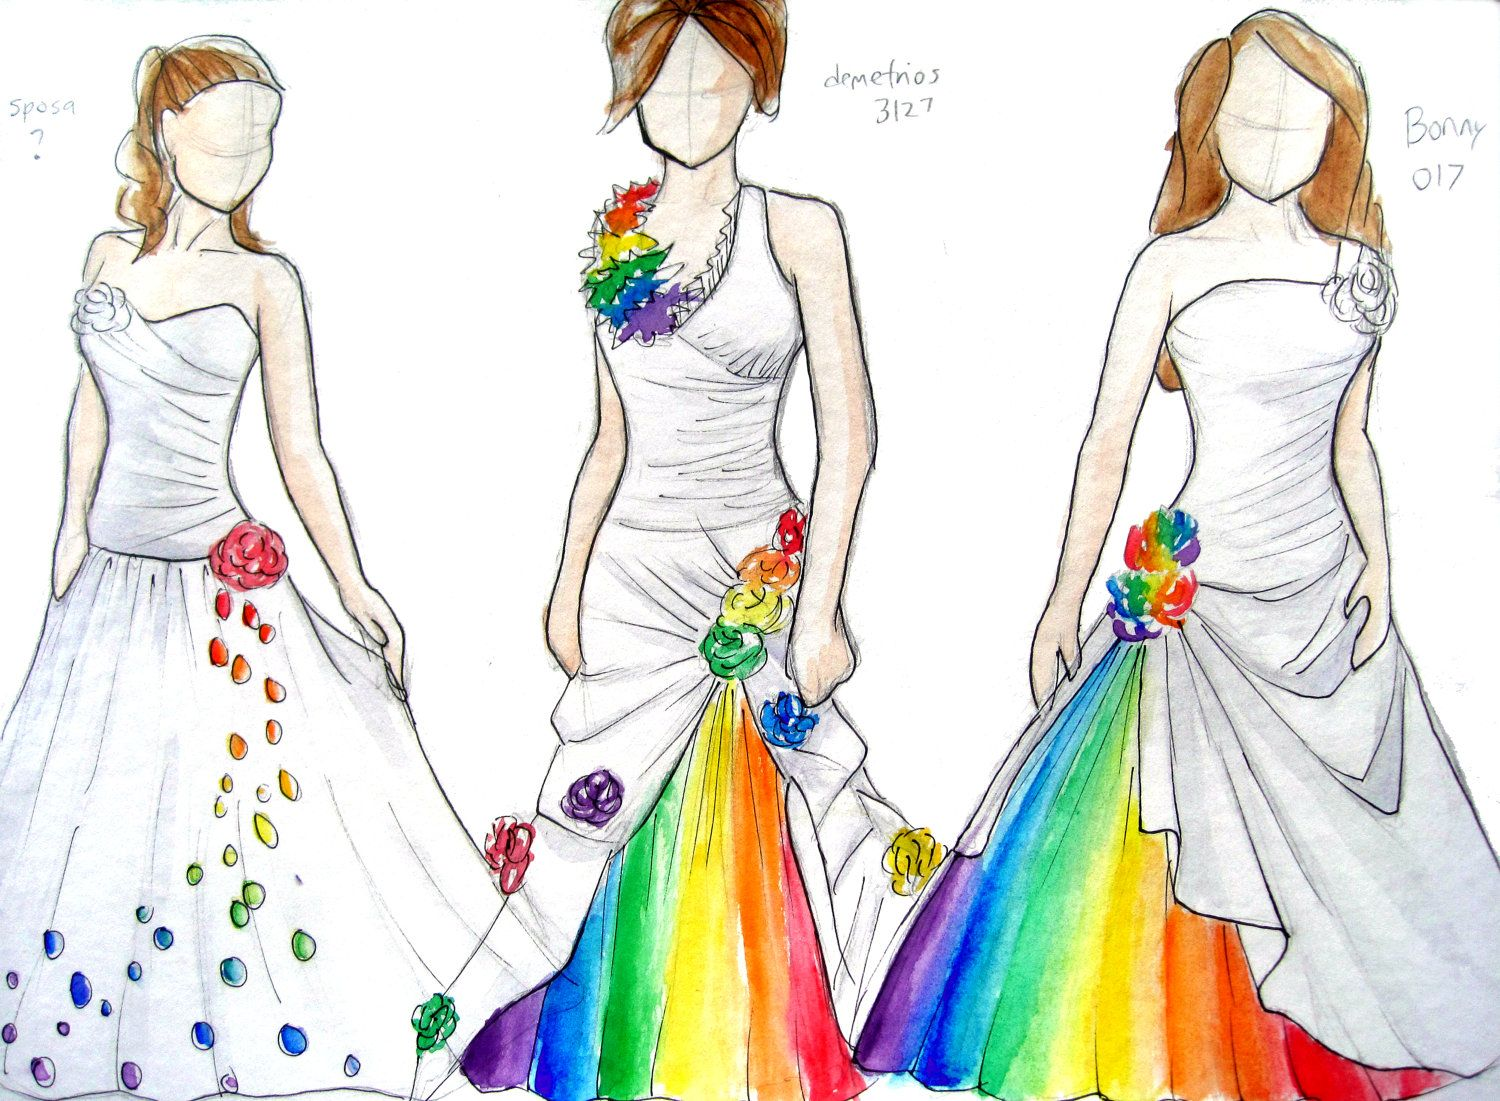 Love these Rainbow Wedding Dress Sketches 8x10 by axoloti on Etsy. $8.00, via Etsy. The perfect mix between color and still classic.